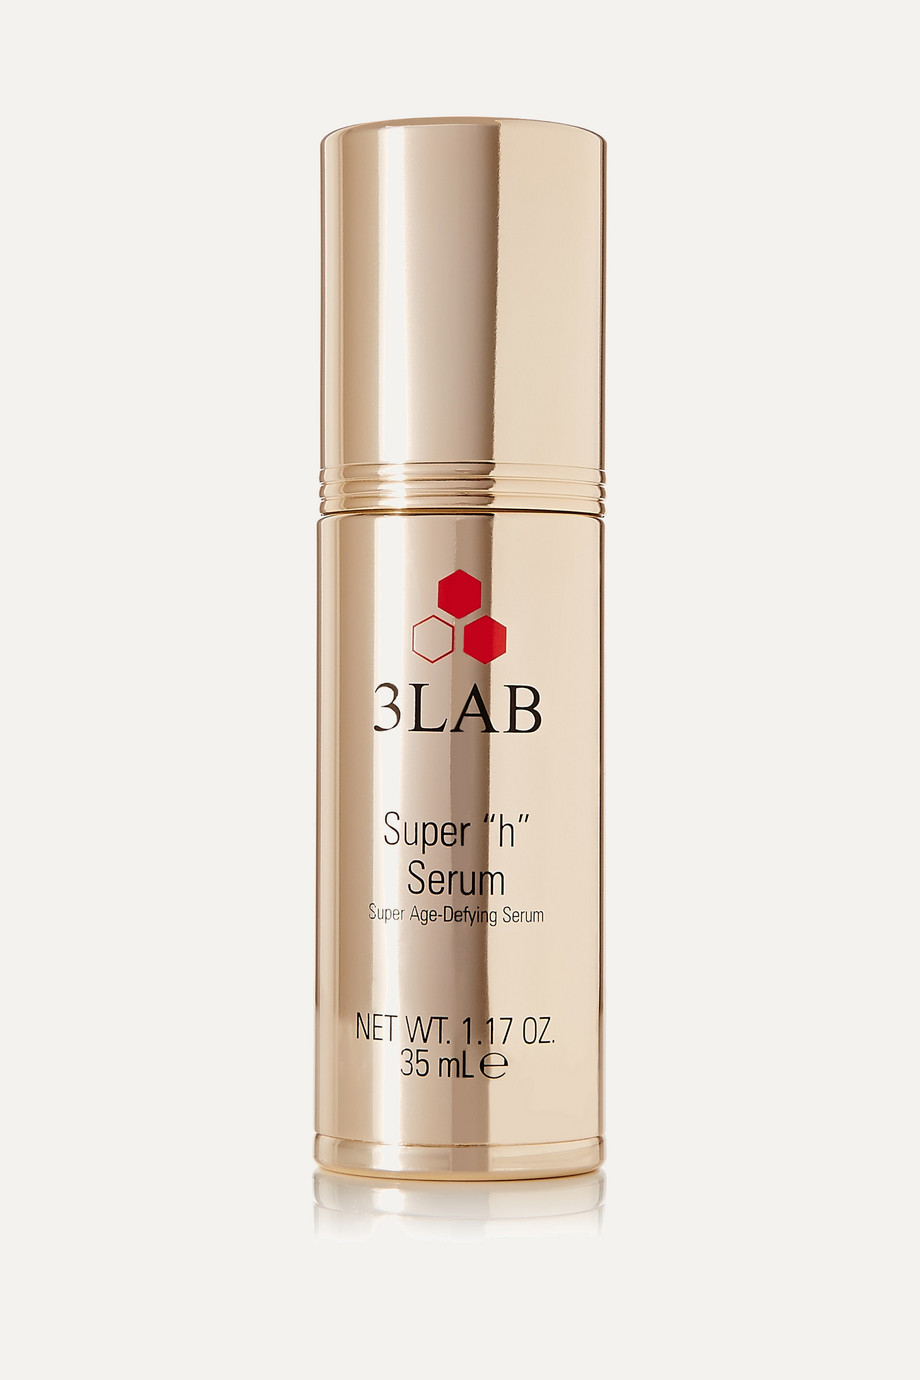 3LAB Super H Serum, 35 ml – Serum